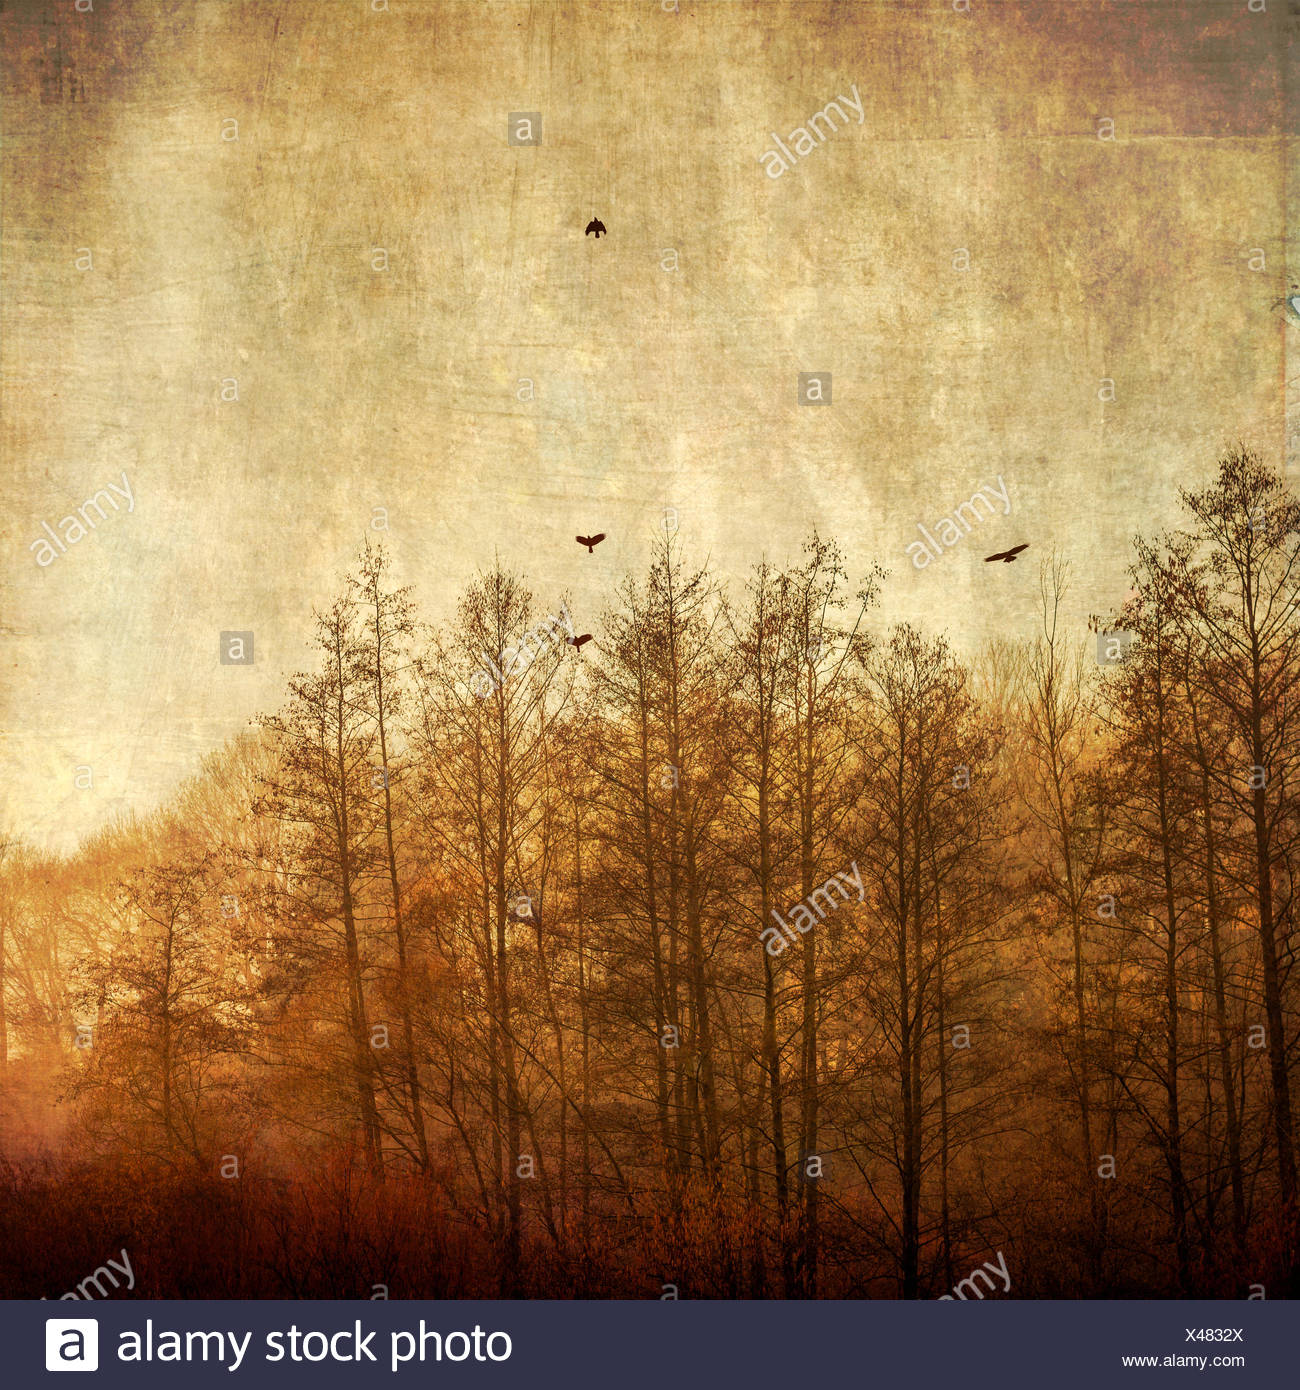 Trees and flying birds in the morning light, textured effect - Stock Image